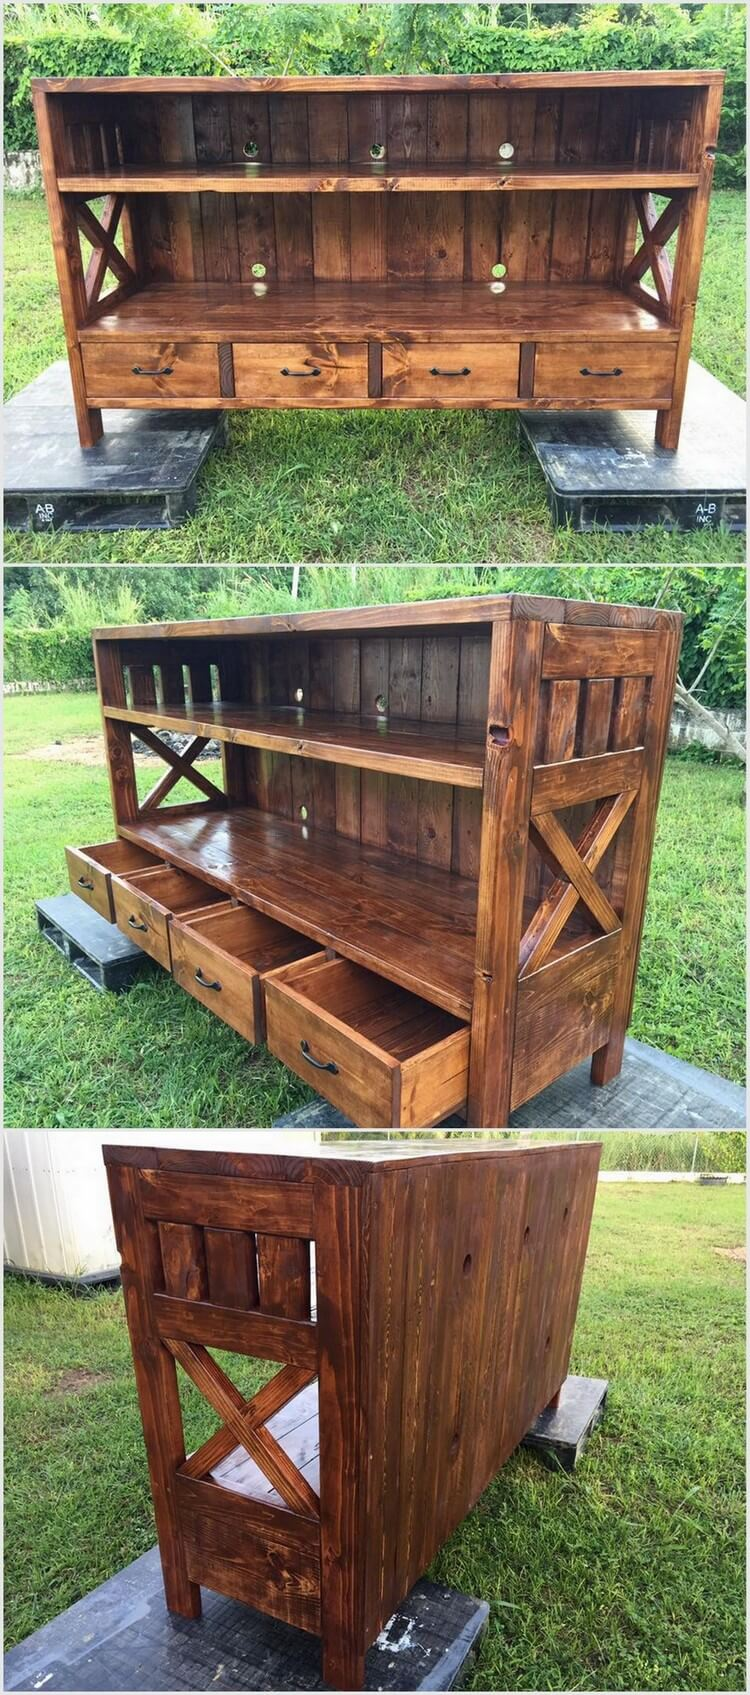 Ideas to reuse the old shipping pallets pallet wood projects for Reuse furniture ideas